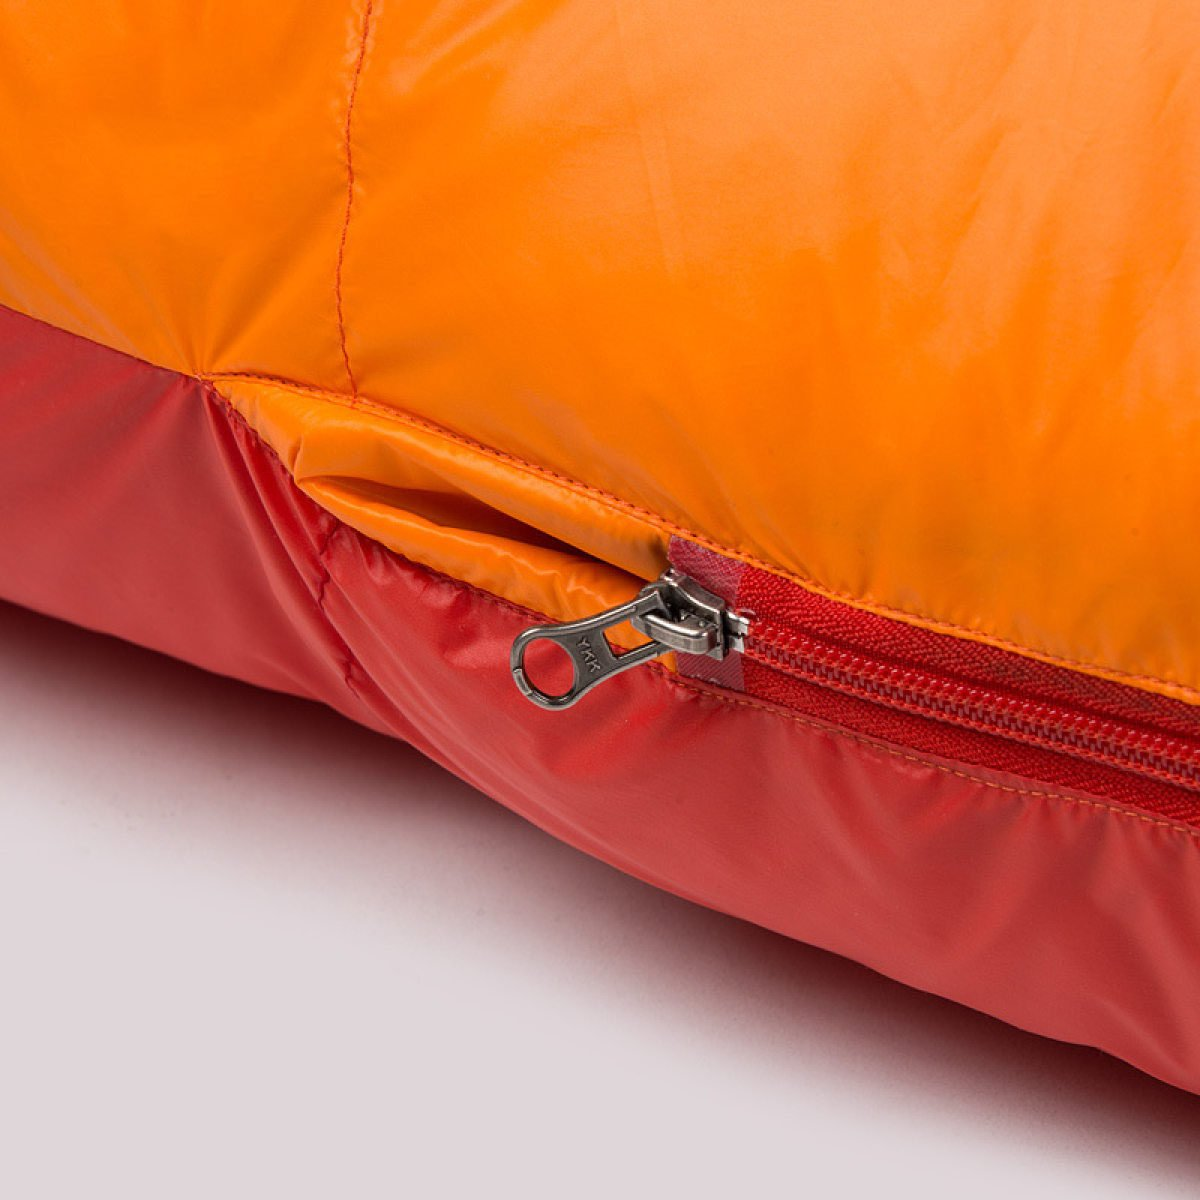 75cm Fit for Kids,Teens and... CUNXIA Sleeping Bag Ultra-light Warm 180